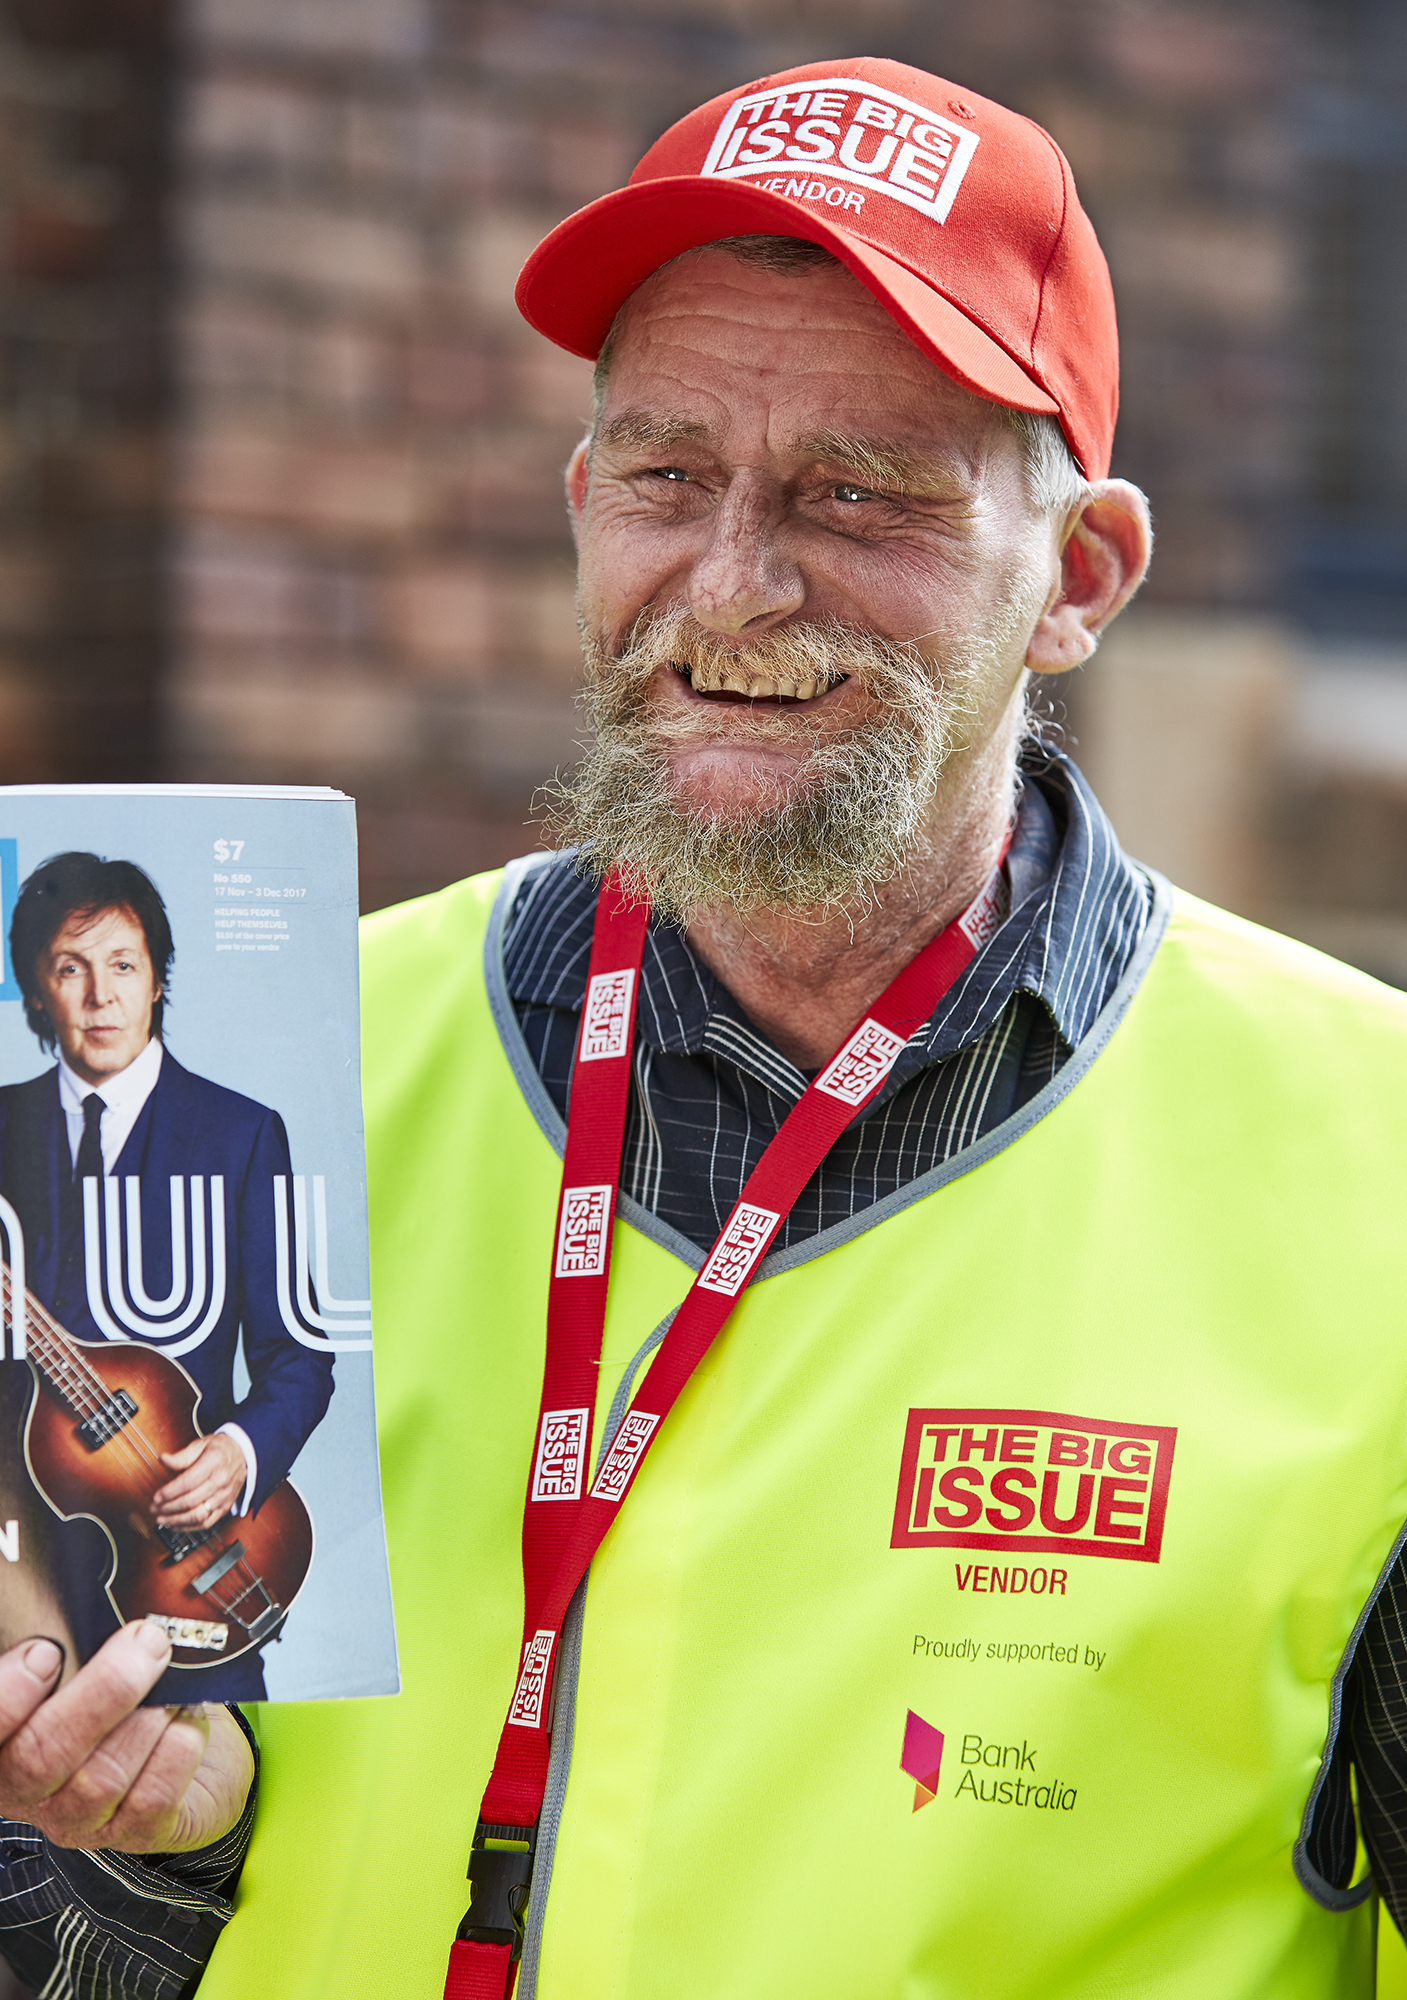 Big Issue - Dave 35.jpg